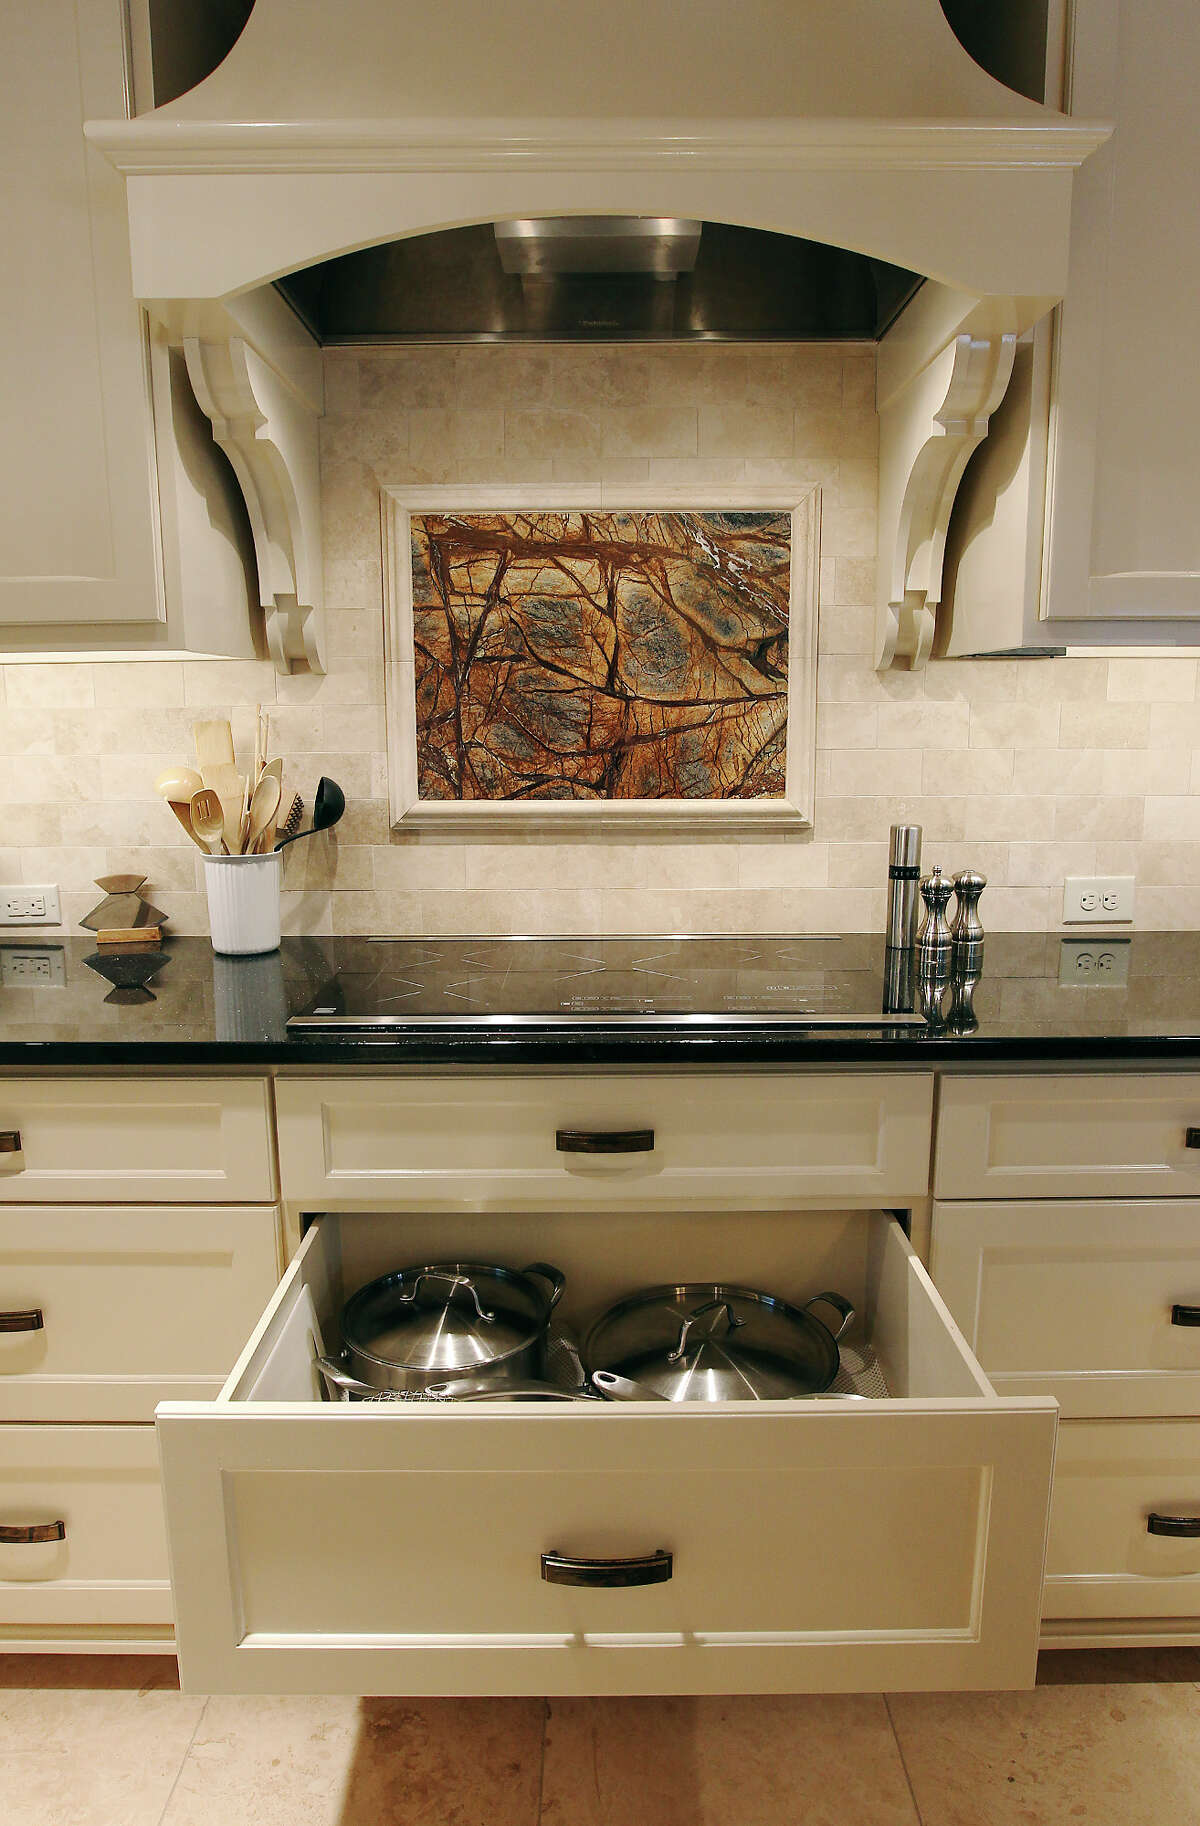 Linda and Bill Blanton's newly remodeled kitchen in Pleasanton, Texas on Tuesday, Nov. 27, 2012. Under the electric range top are drawers for the Blantons to store pots and pans. On the back splash is a granite insert that matches the kitchen island.